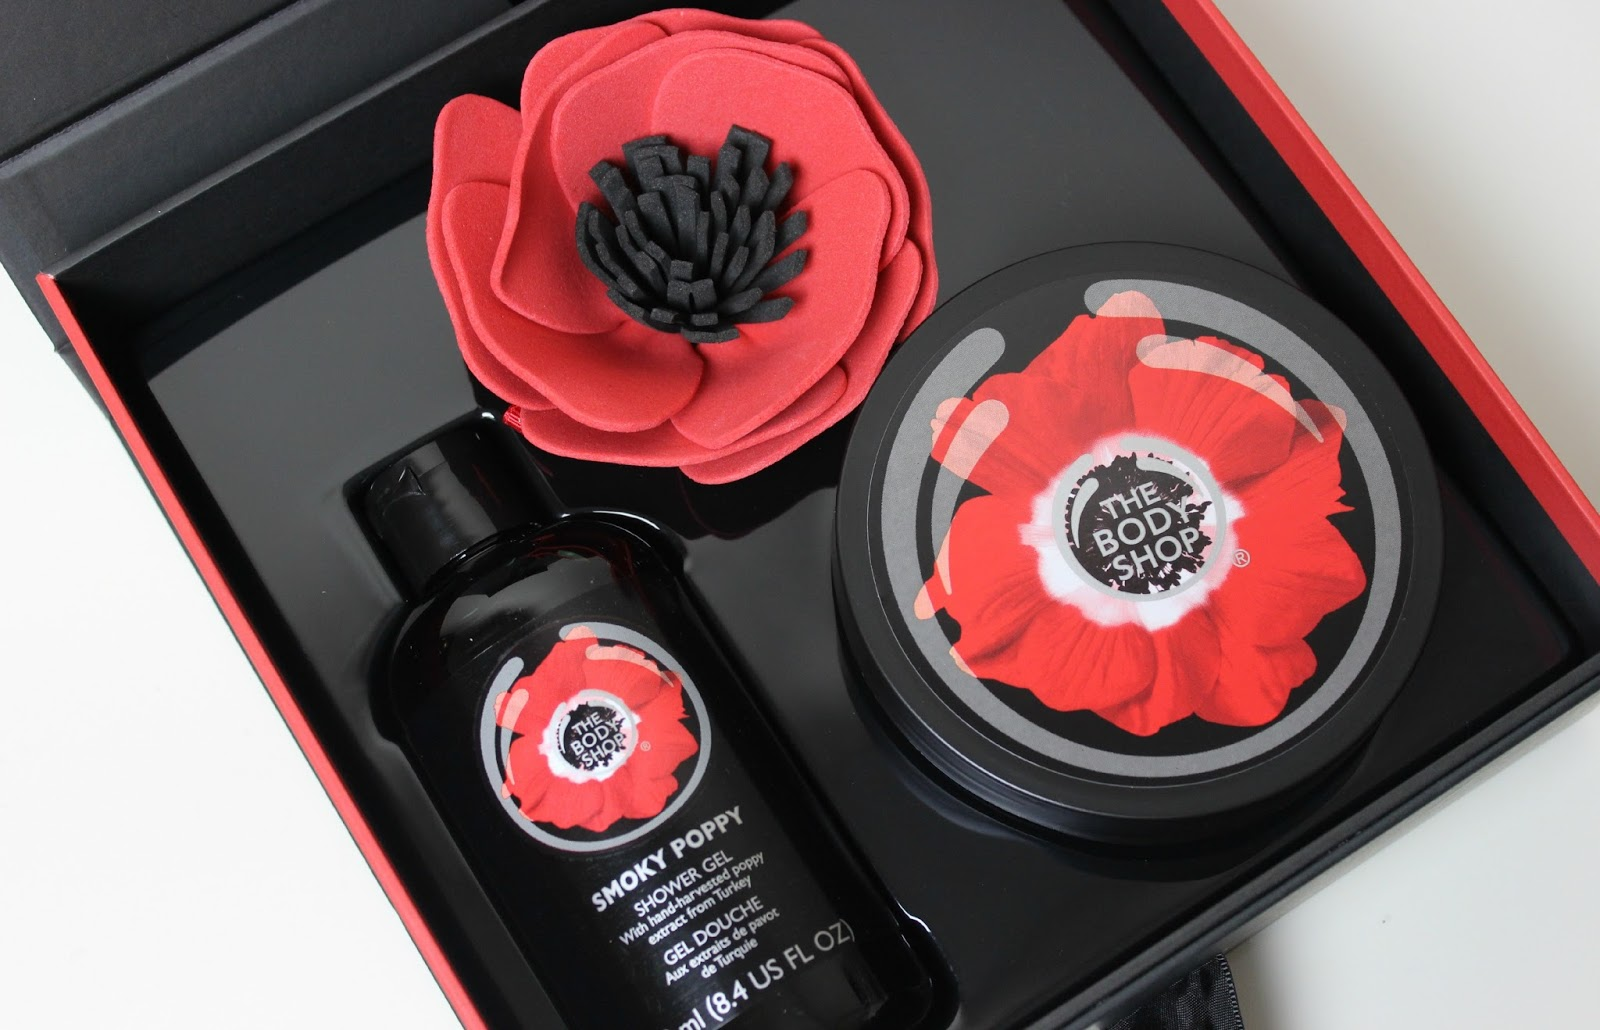 A picture of The Body Shop Limited Edition Smoky Poppy Collection